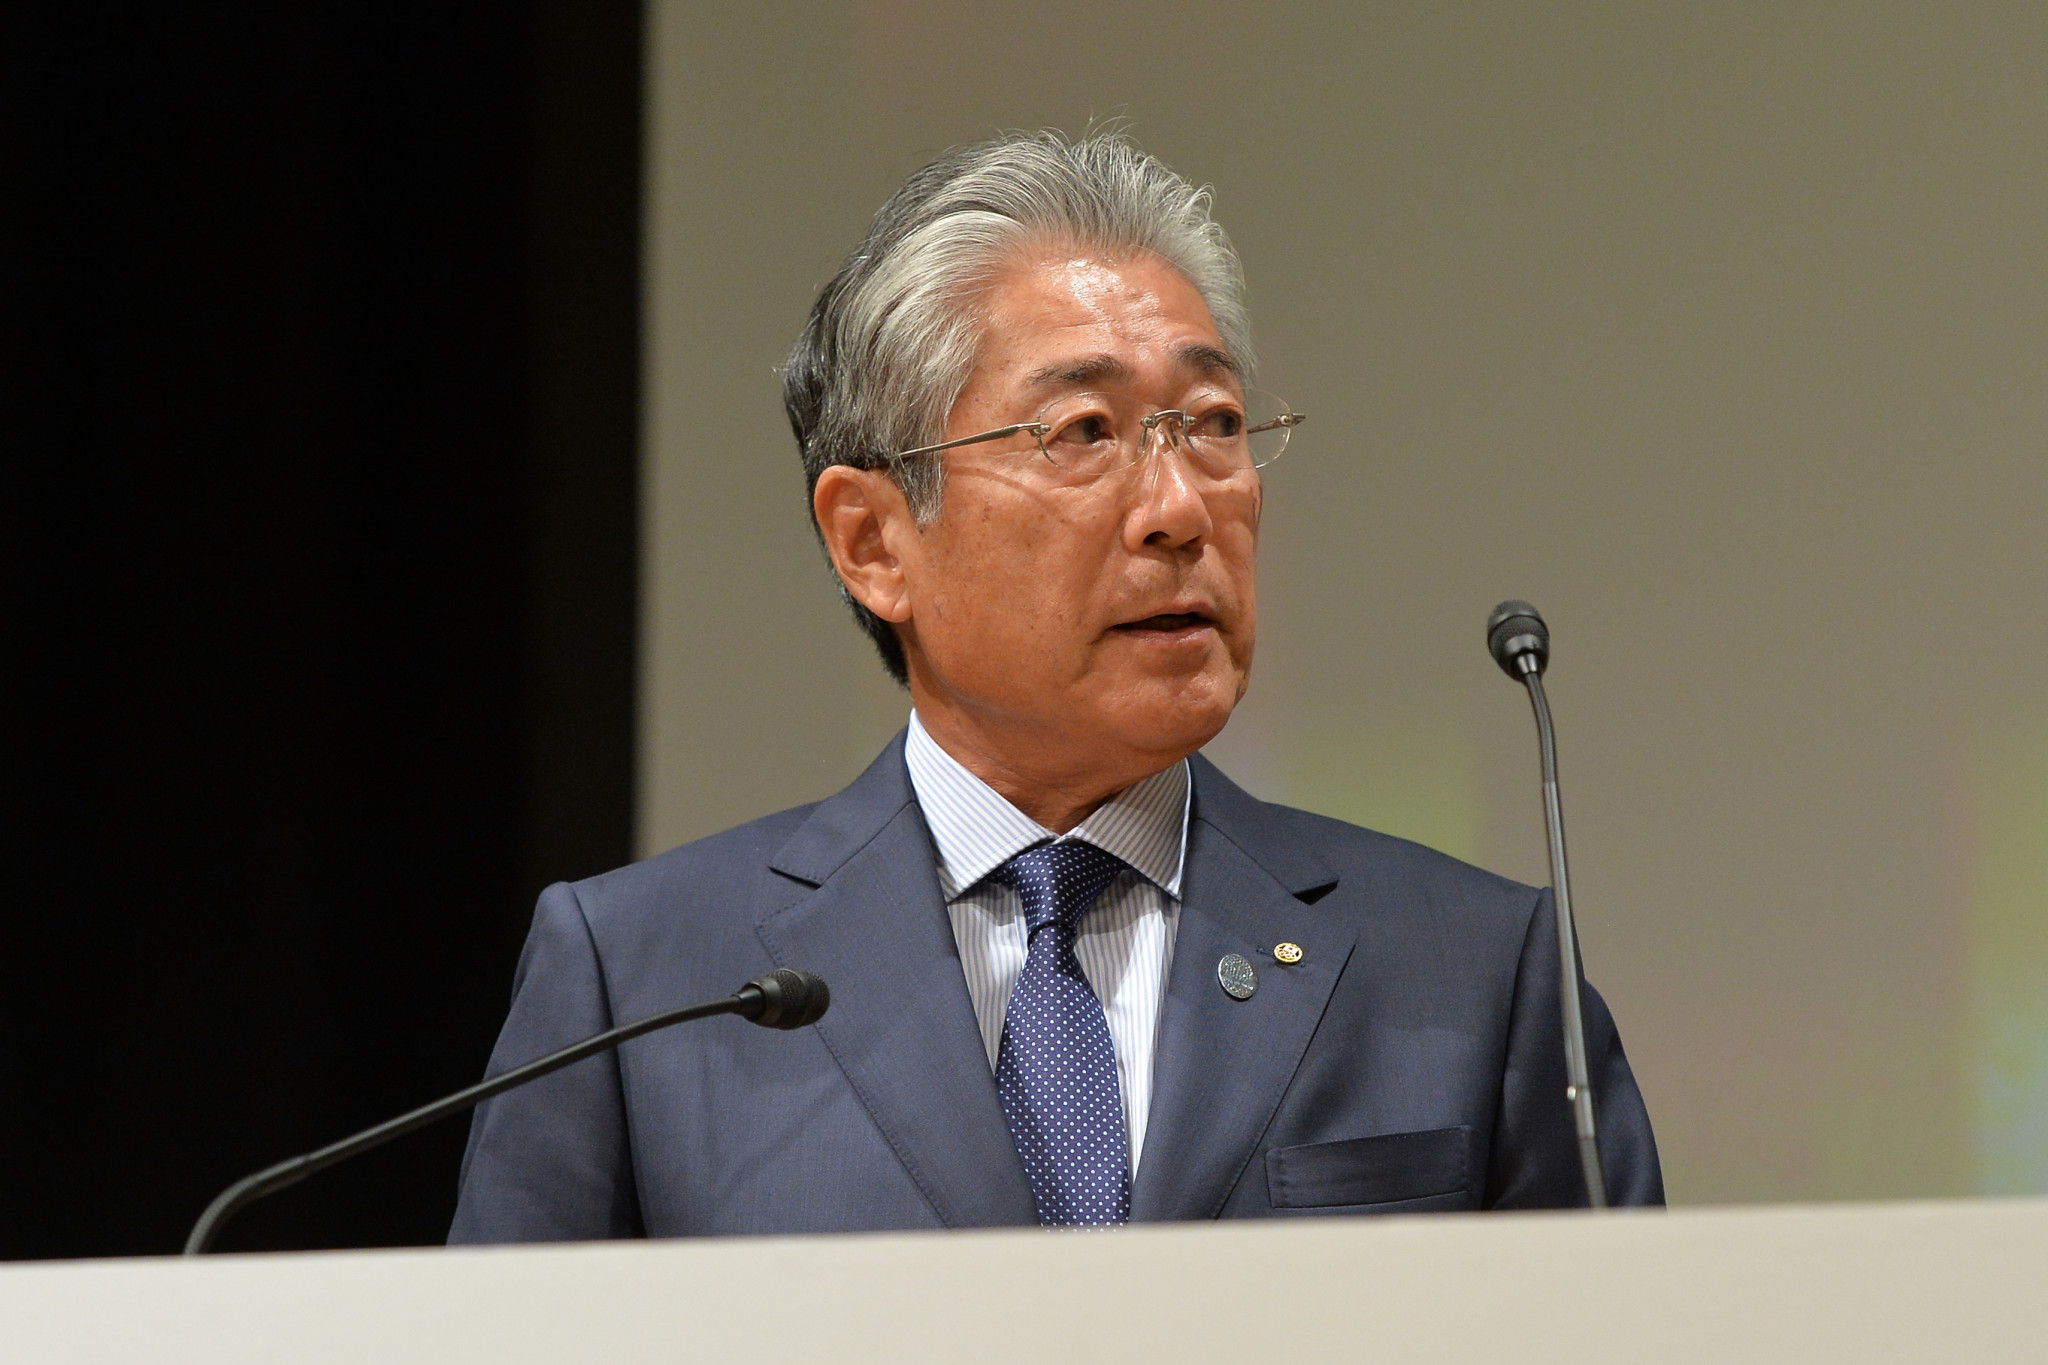 Japanese Olympic Committee President indicted on corruption charges in France